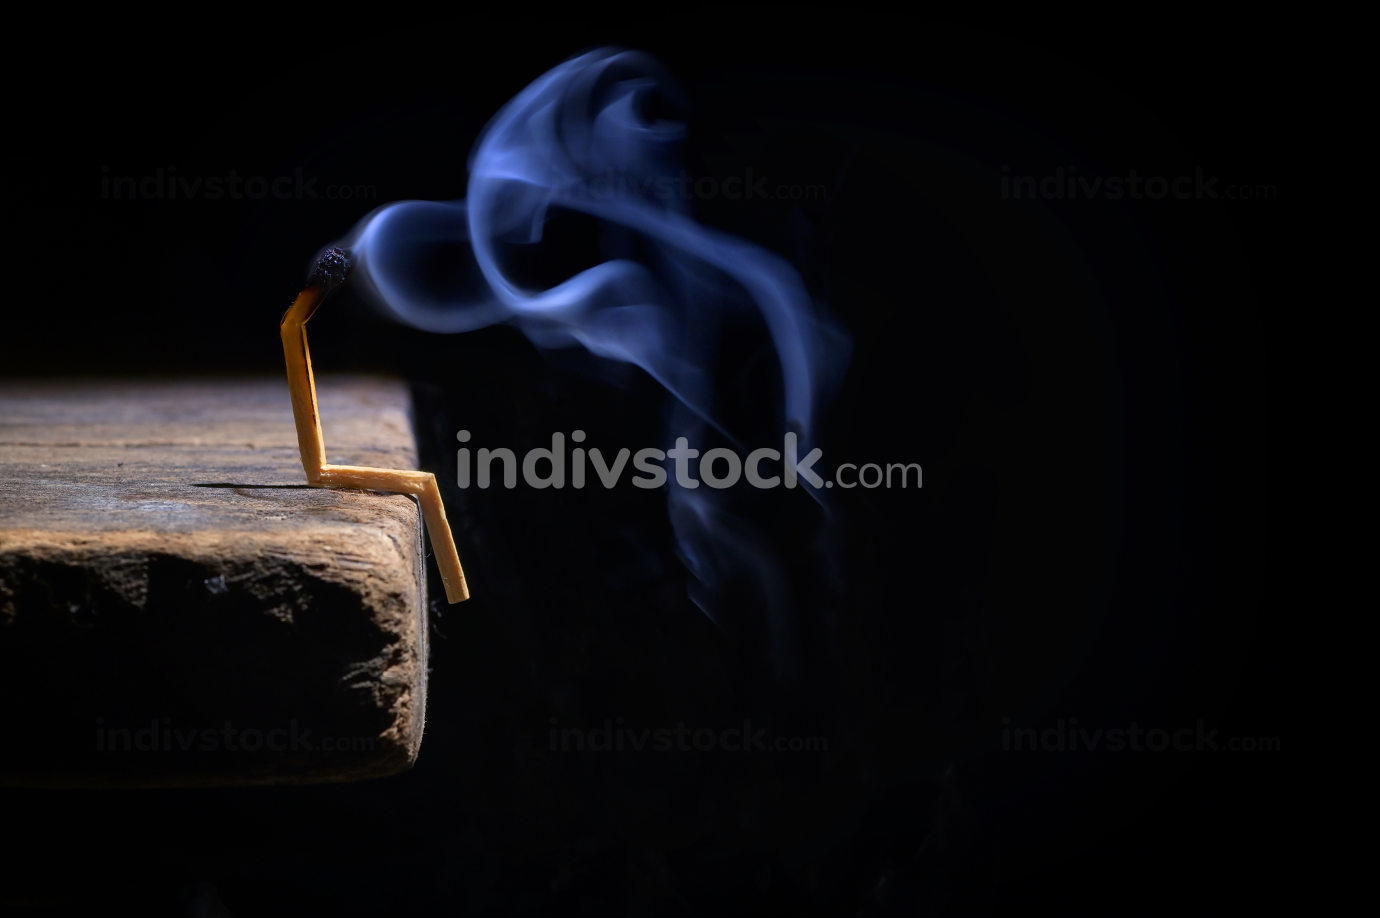 Conceptual burned out and smoke wooden matches